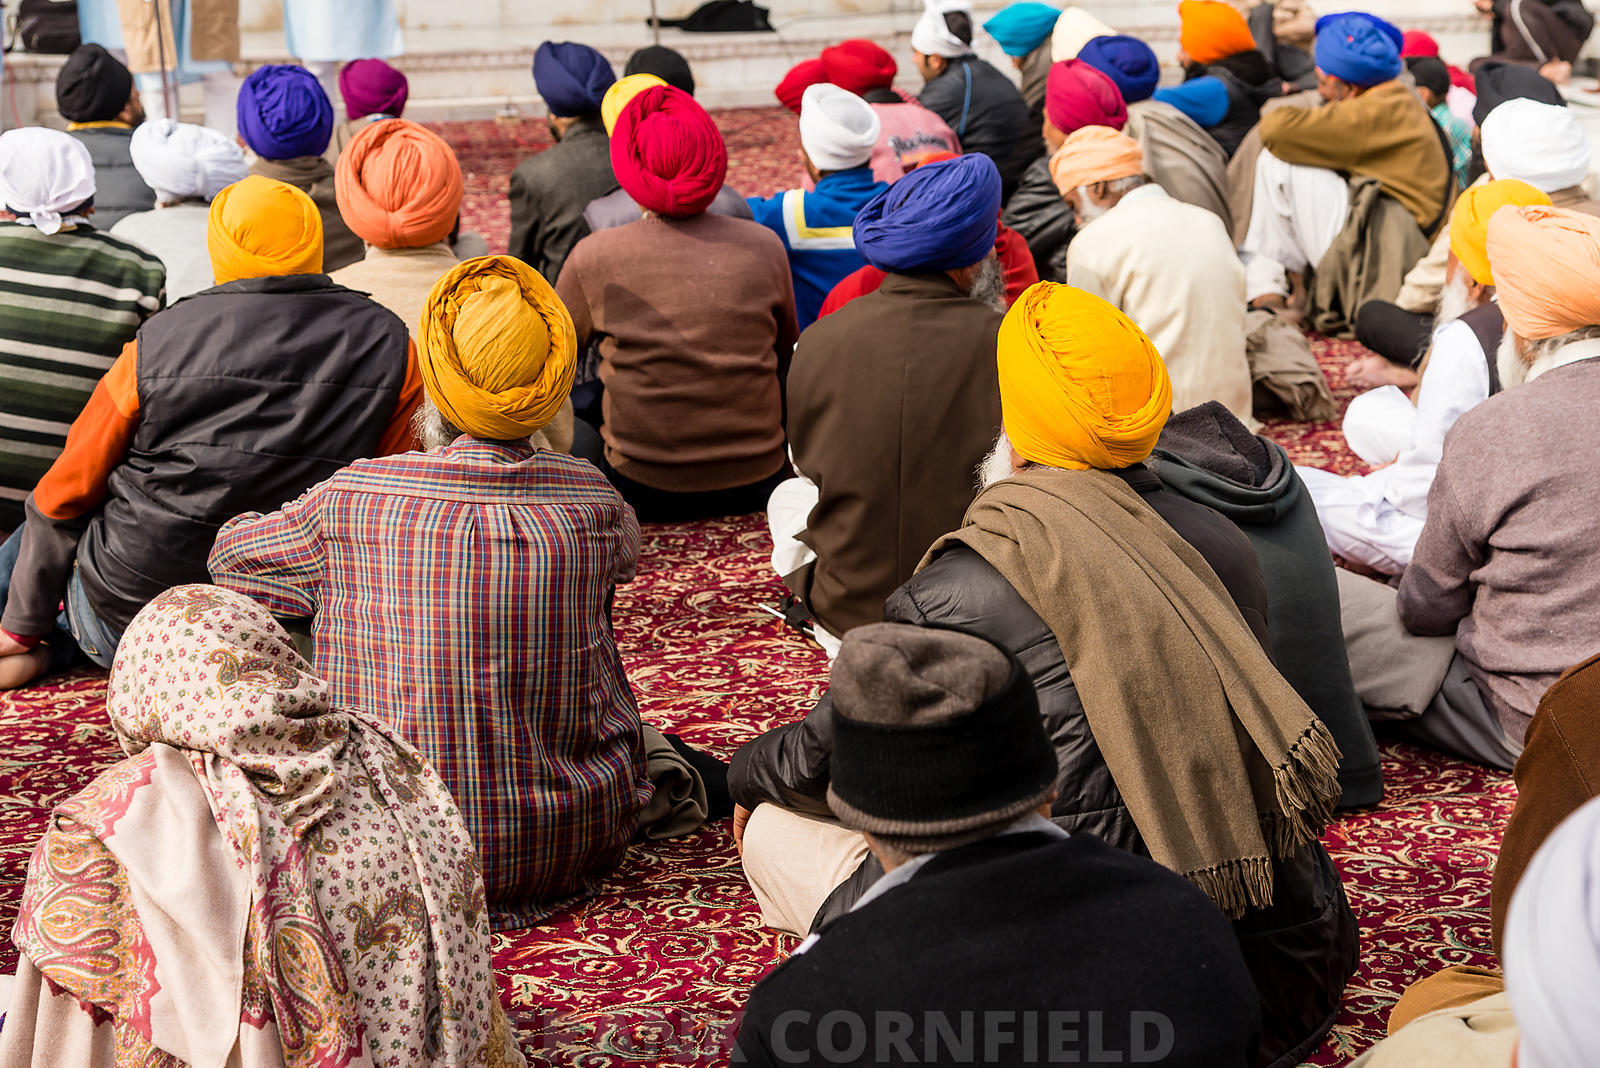 Sikh pilgrims sitting at prayer at the Golden Temple in Amritsar.